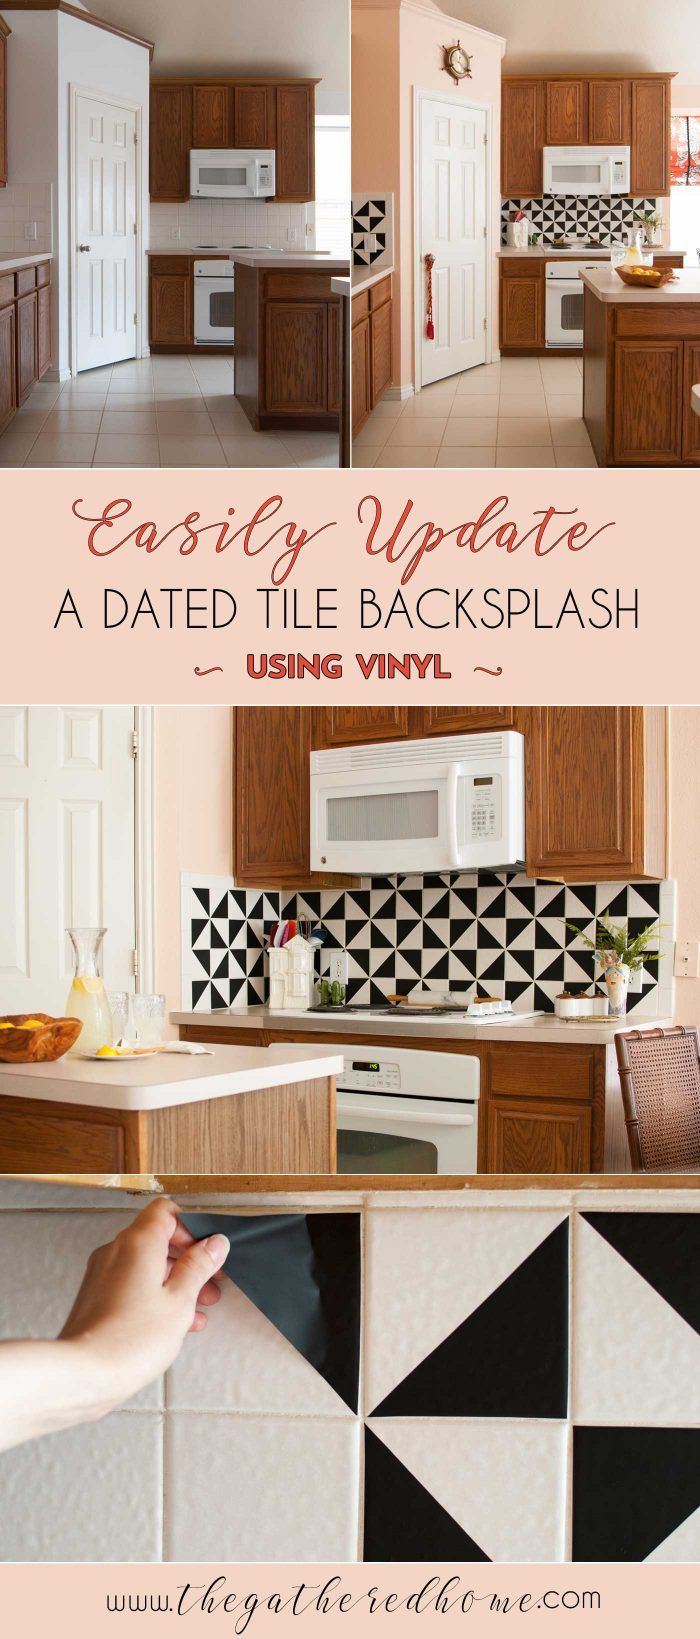 Kitchen Backsplash Vinyl best 20+ vinyl backsplash ideas on pinterest | vinyl tile